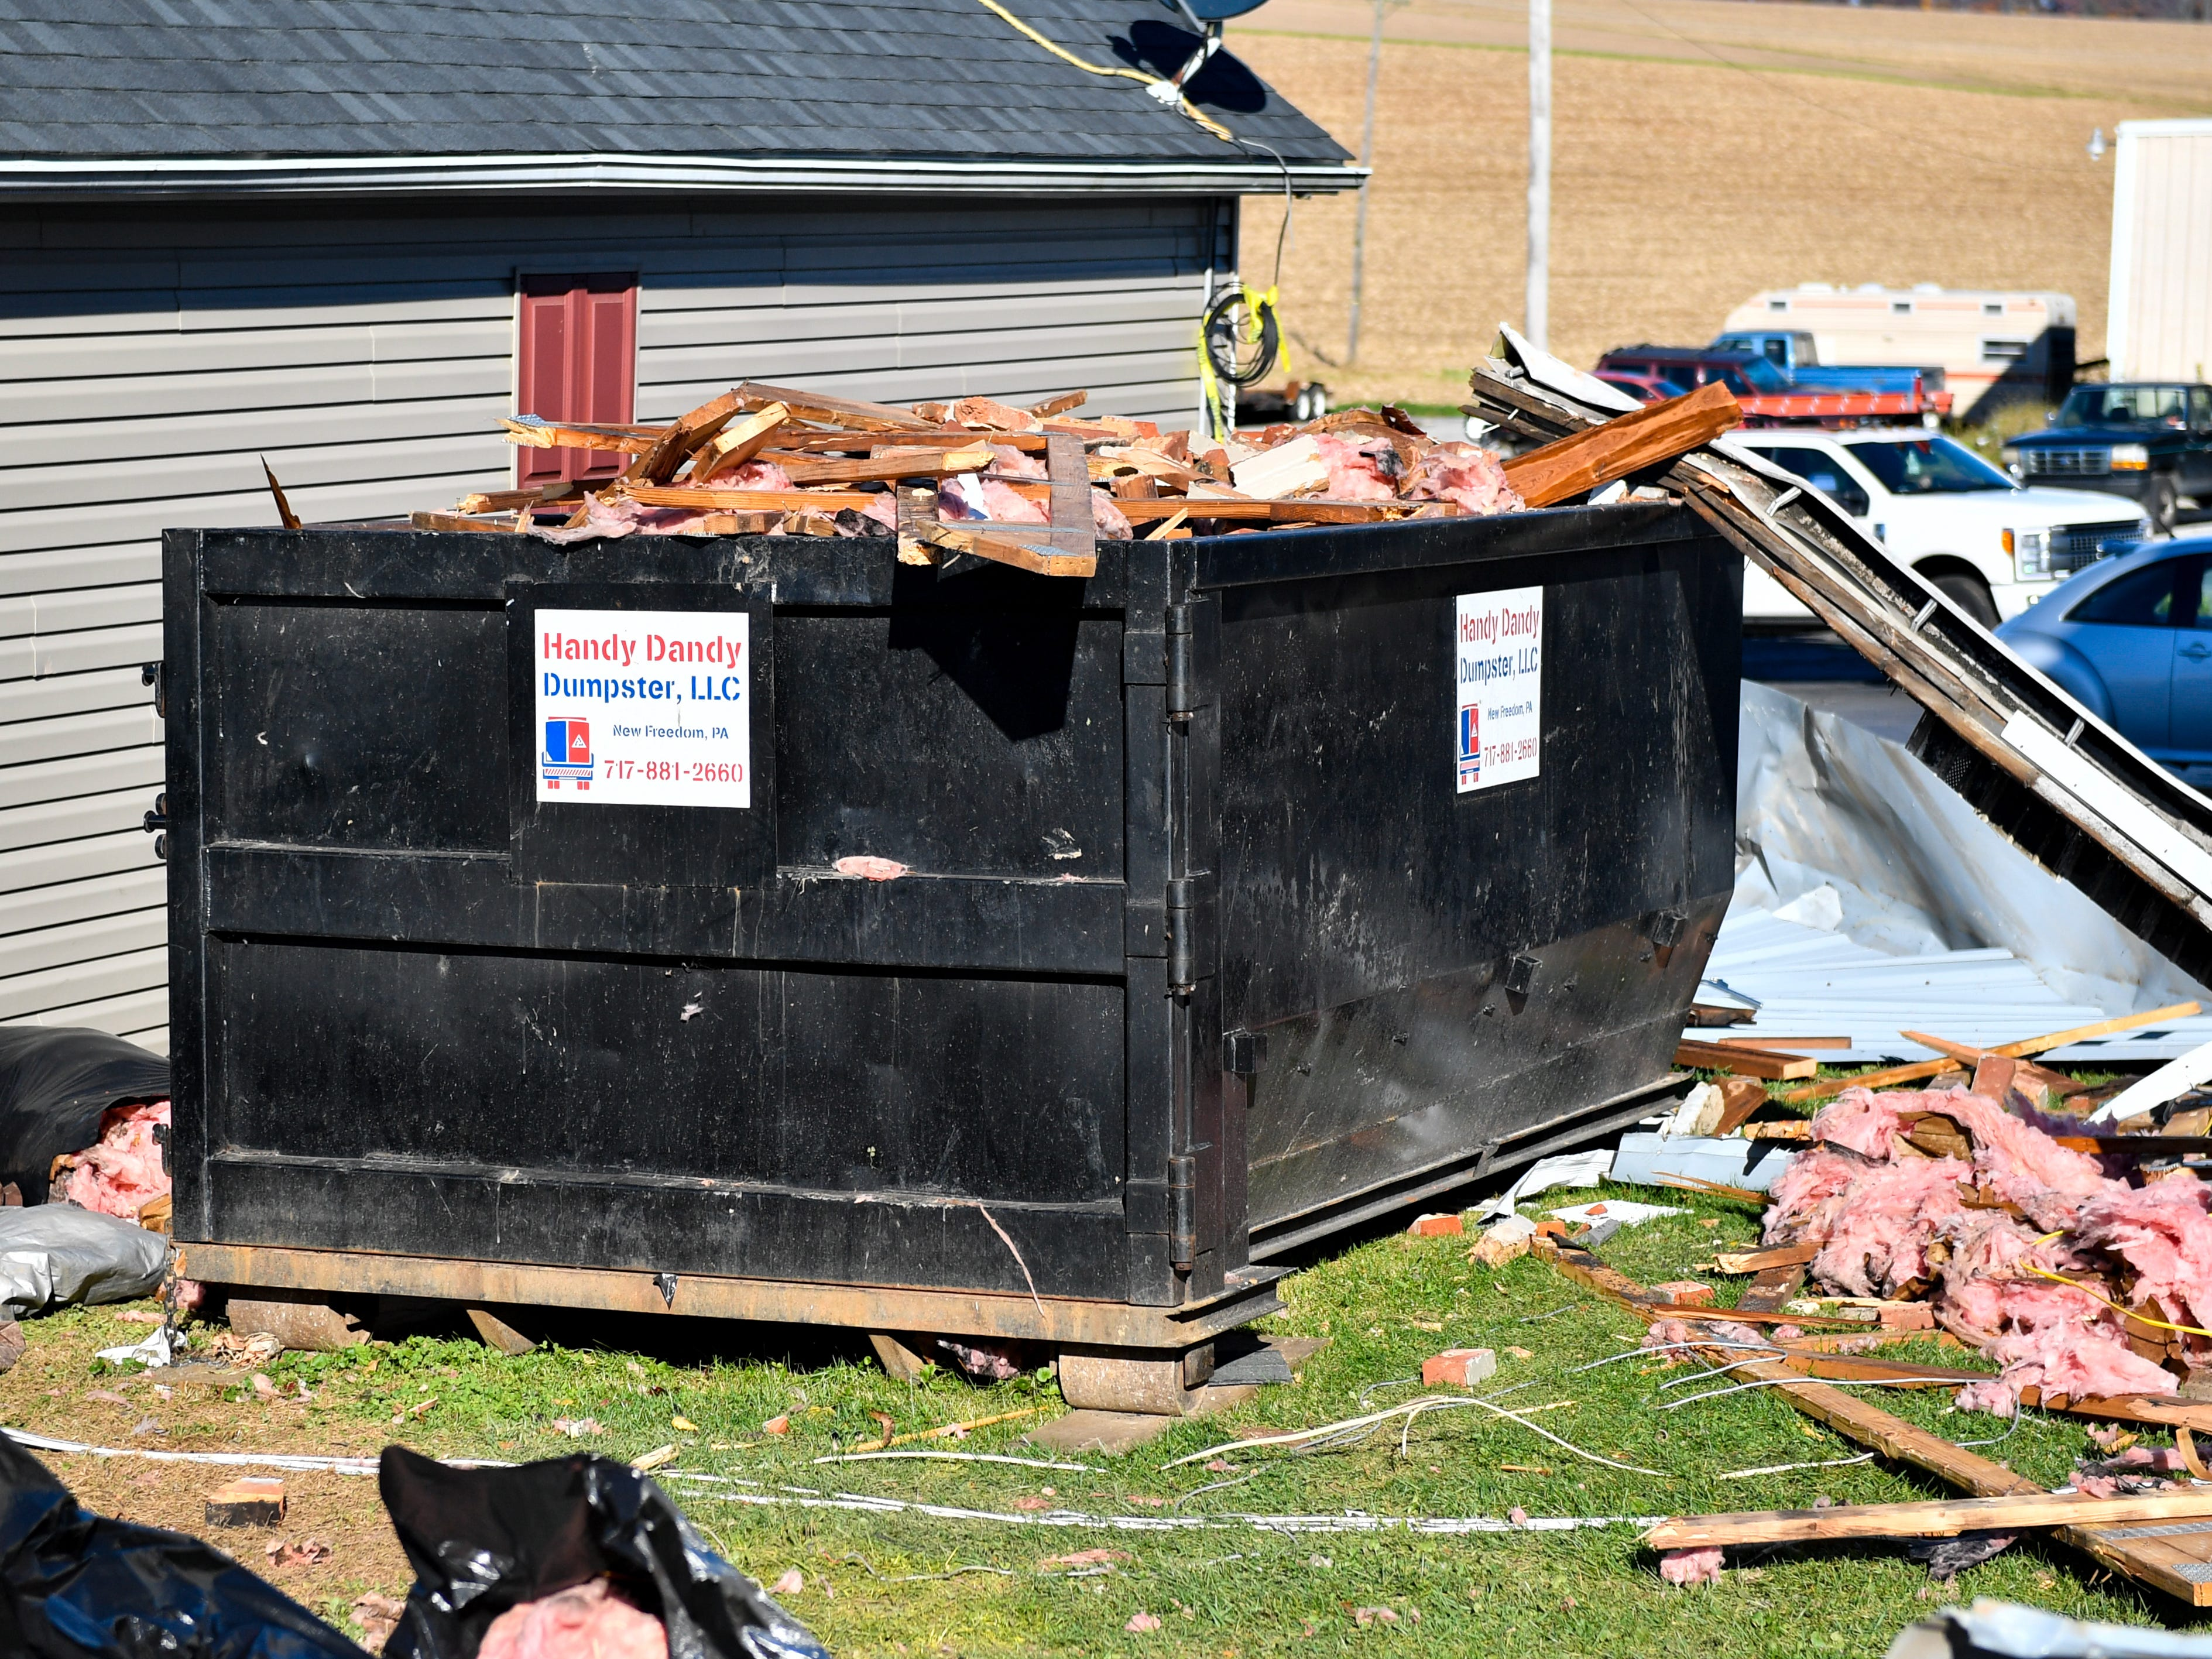 People working on the salon's roof have filled this dumpster with debris, November 3, 2018.